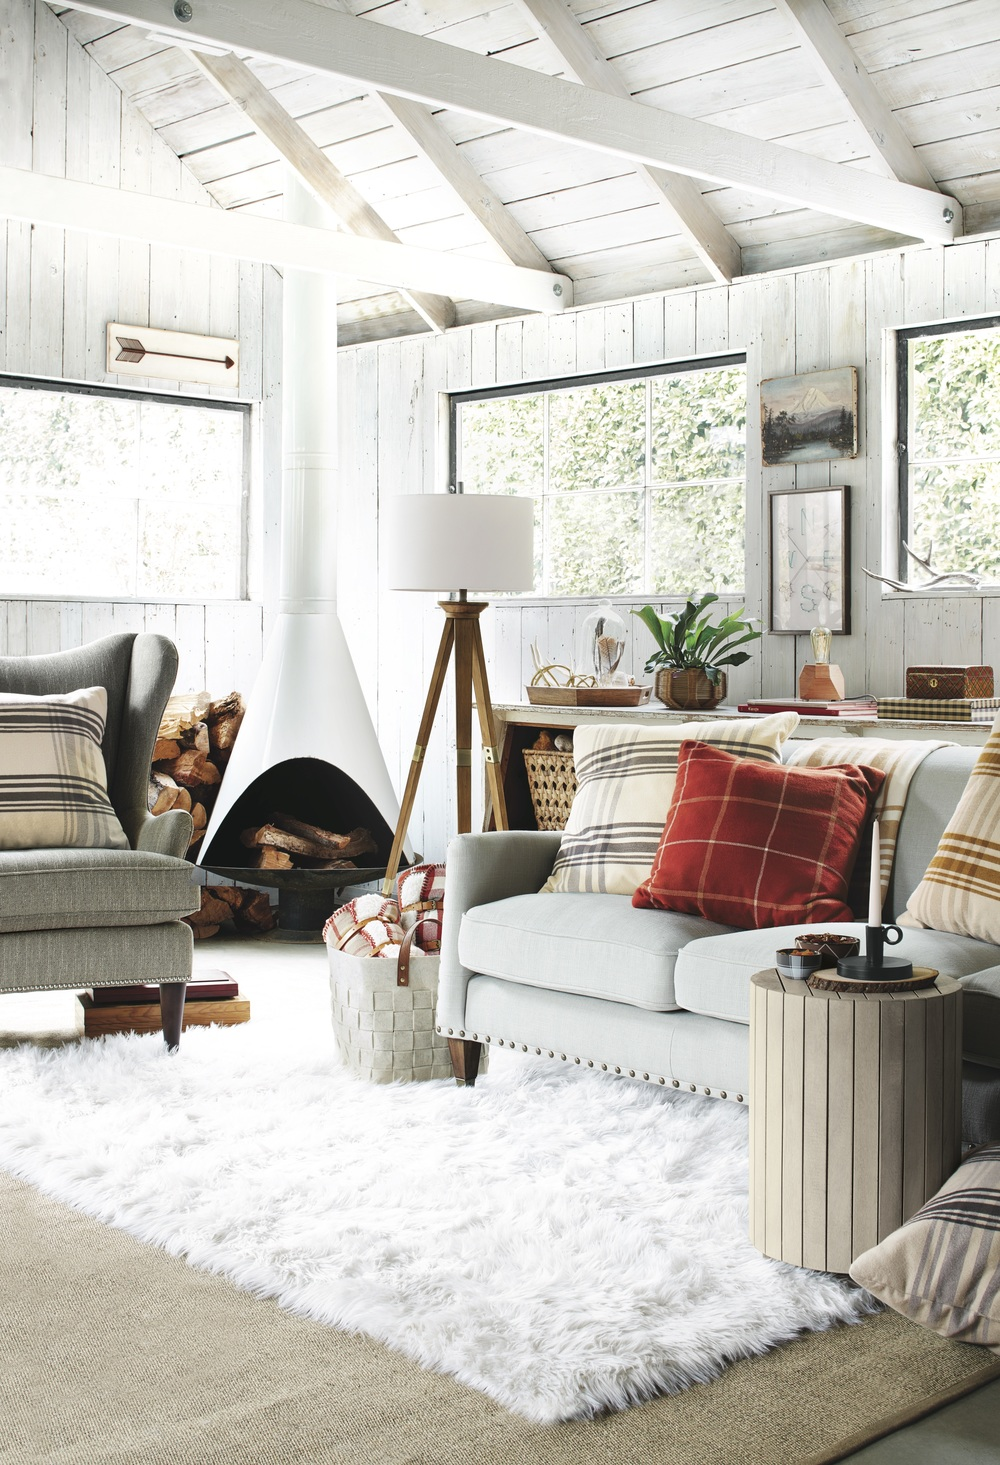 The white washed wood beams and vaulted ceiling create the perfect earthy setting for Target's Nordic inspired Winter collection.